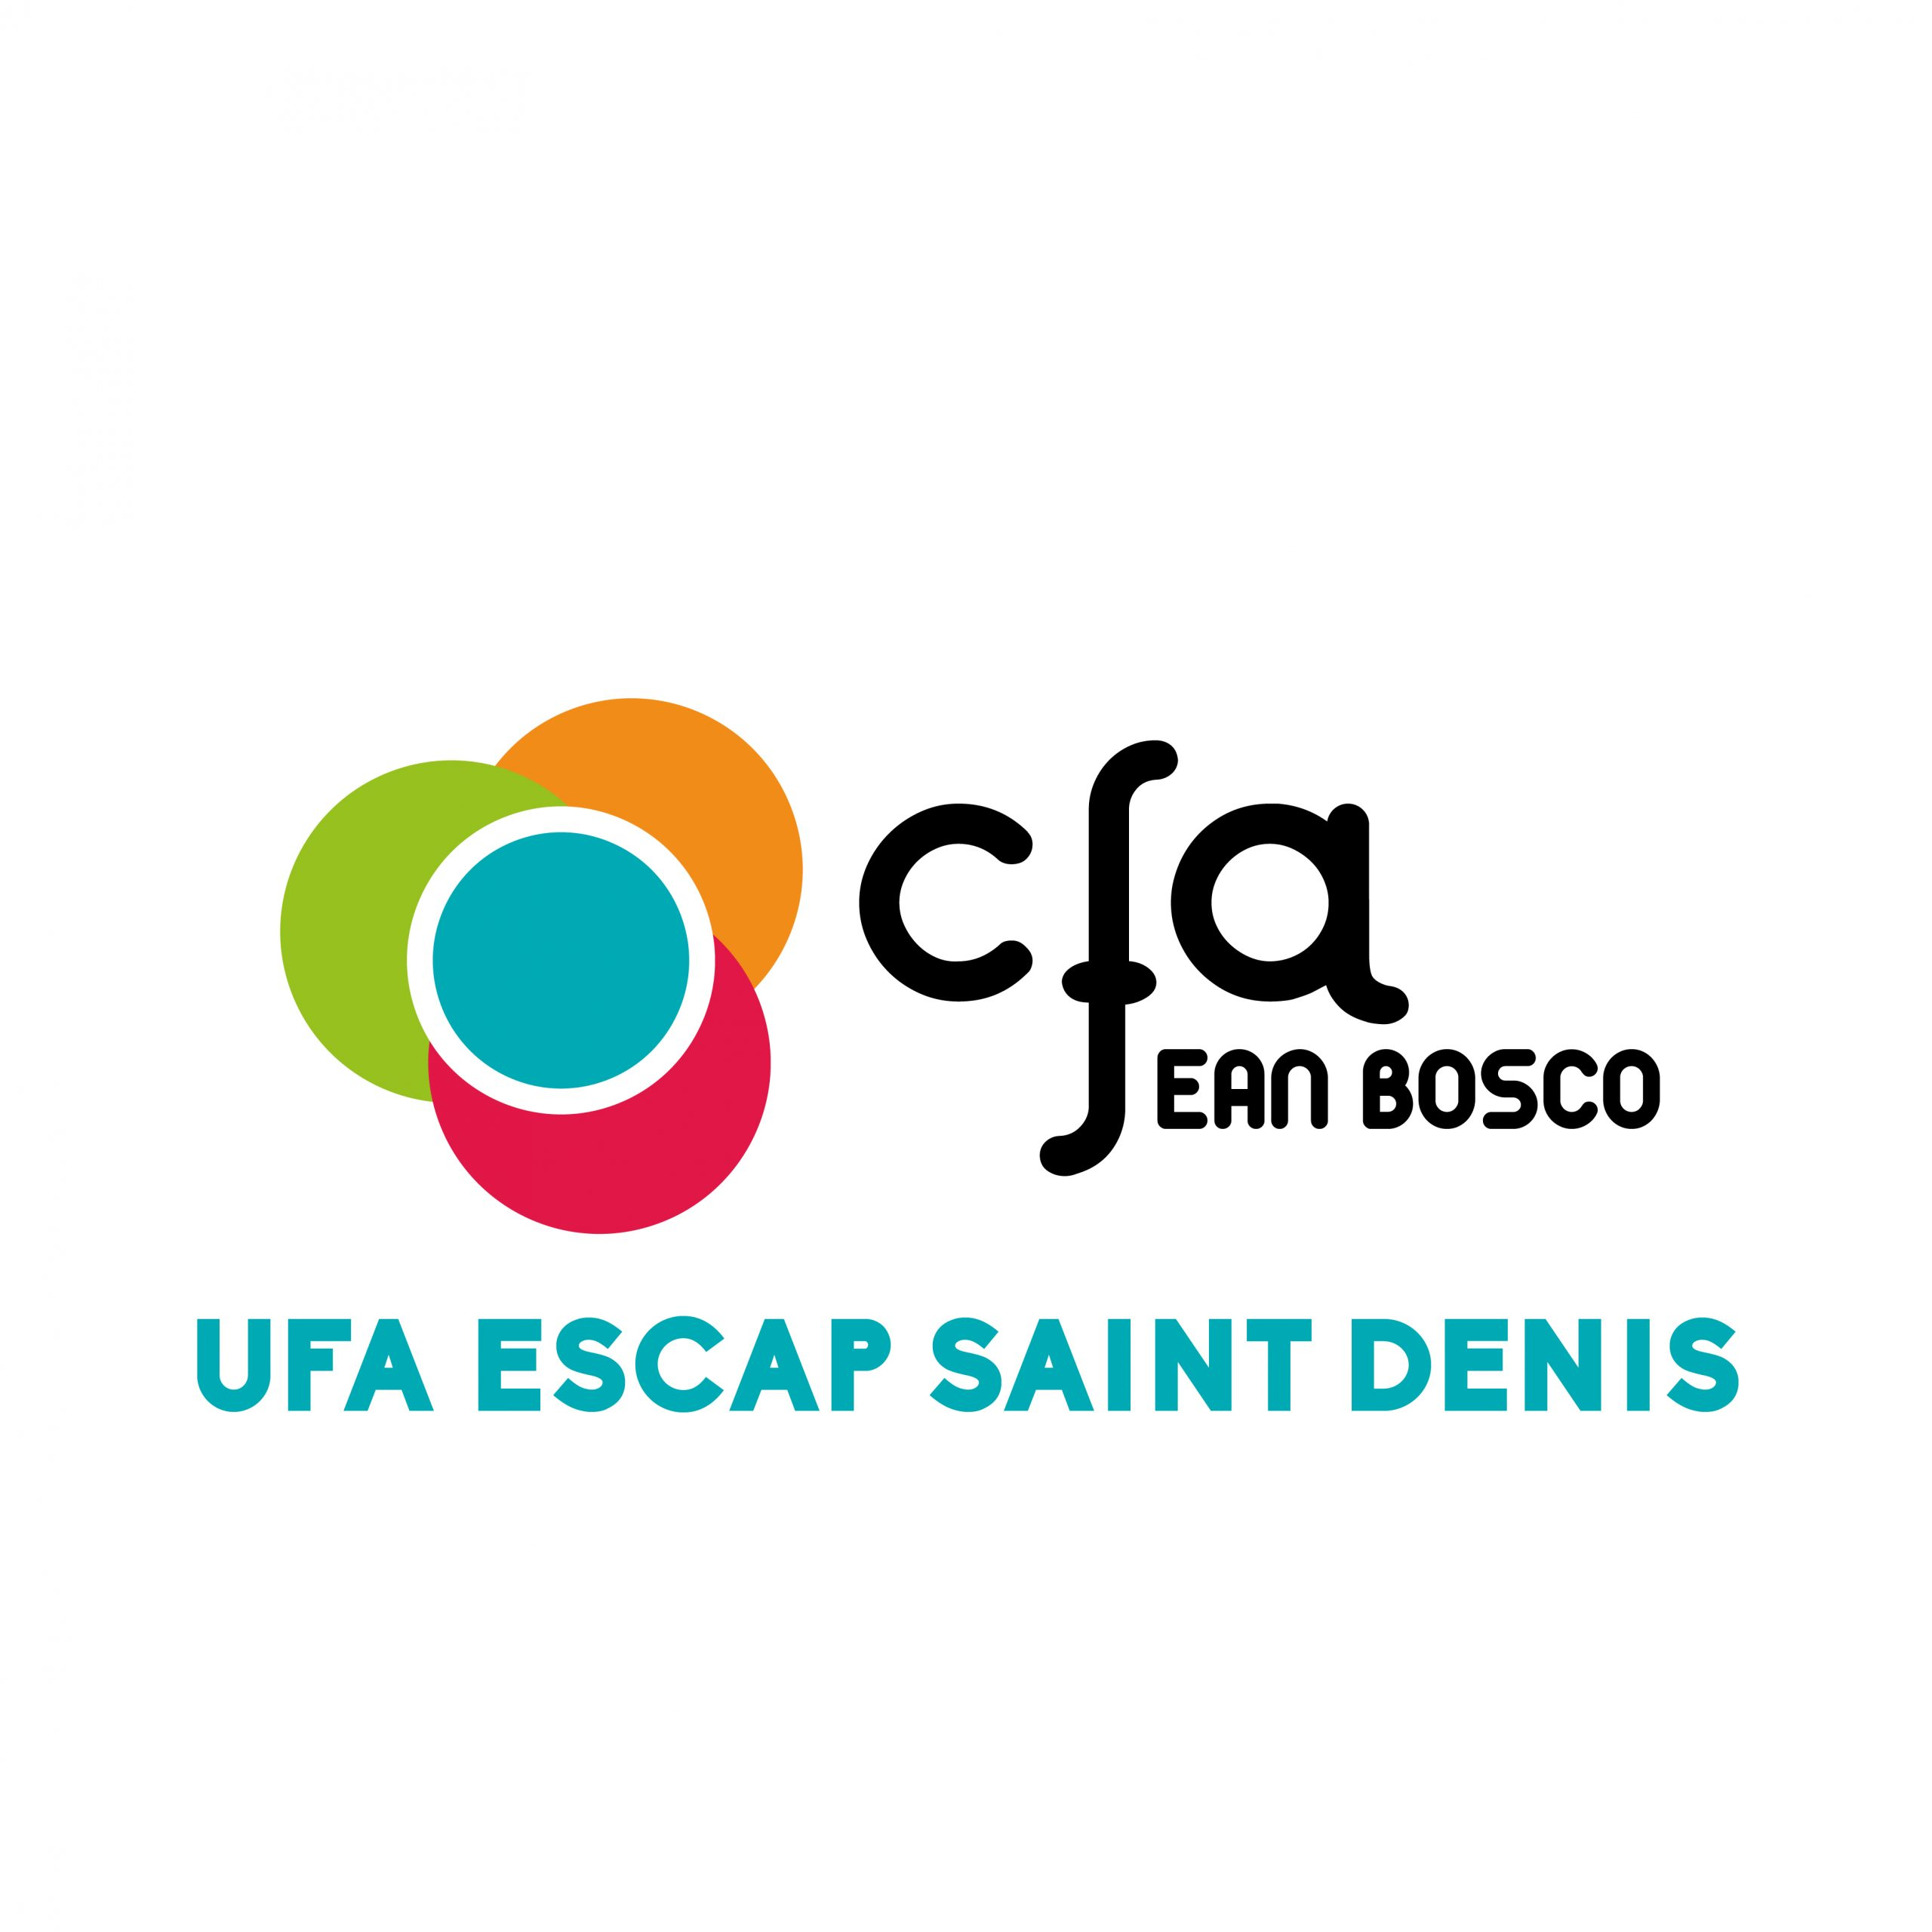 UFA ESCAP SAINT DENIS